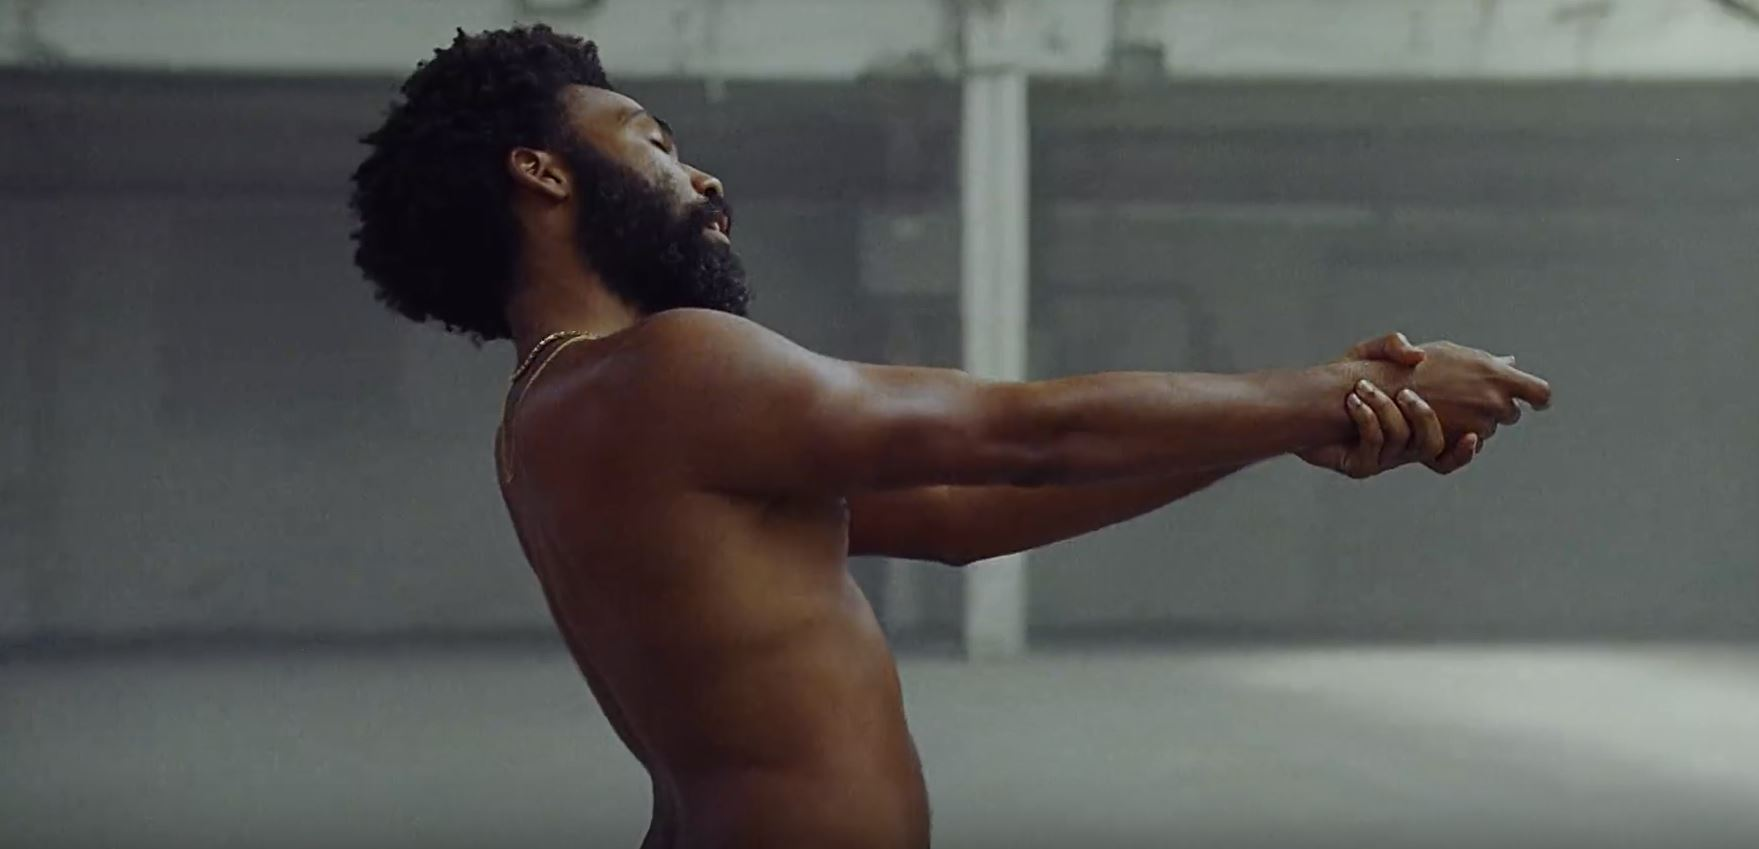 Watch The New Childish Gambino Controversial Video 'This Is America'